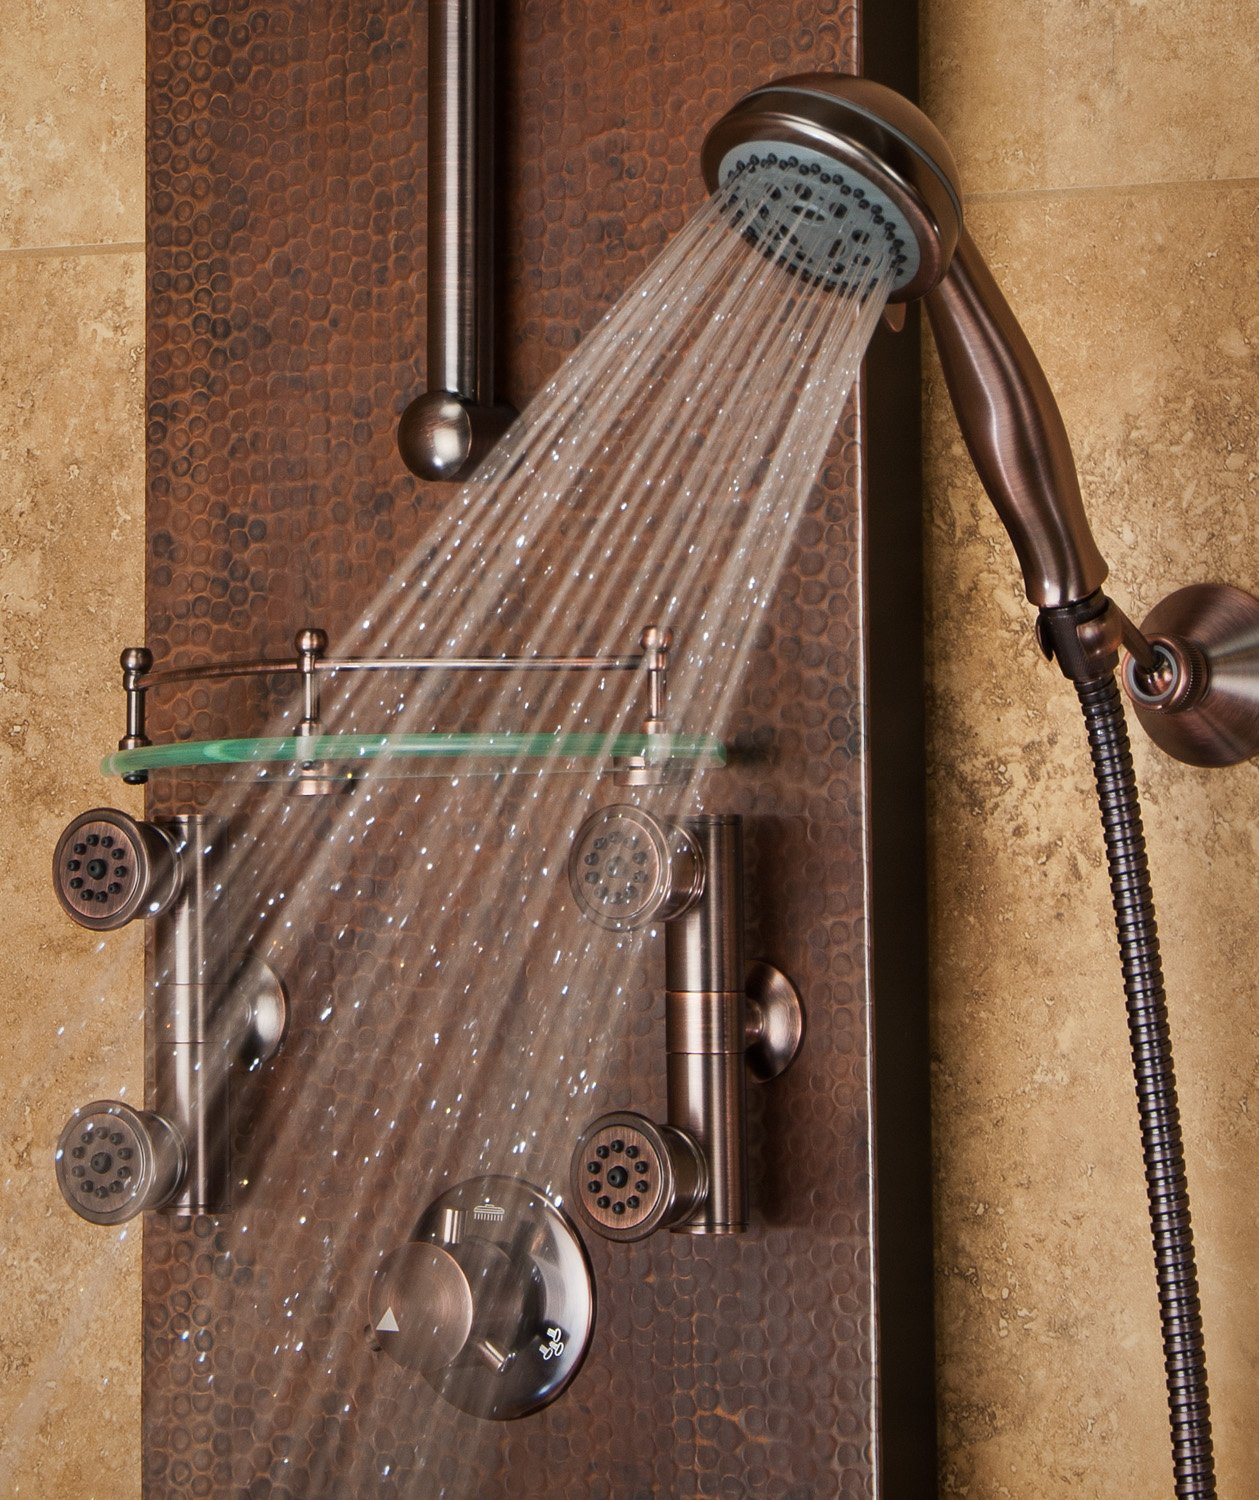 PULSE Showerspas 1016 Mojave Pre Plumbed Hand Hammered Copper Shower System,  Copper With Oil Rubbed Bronze Finish   Shower Towers   Amazon.com